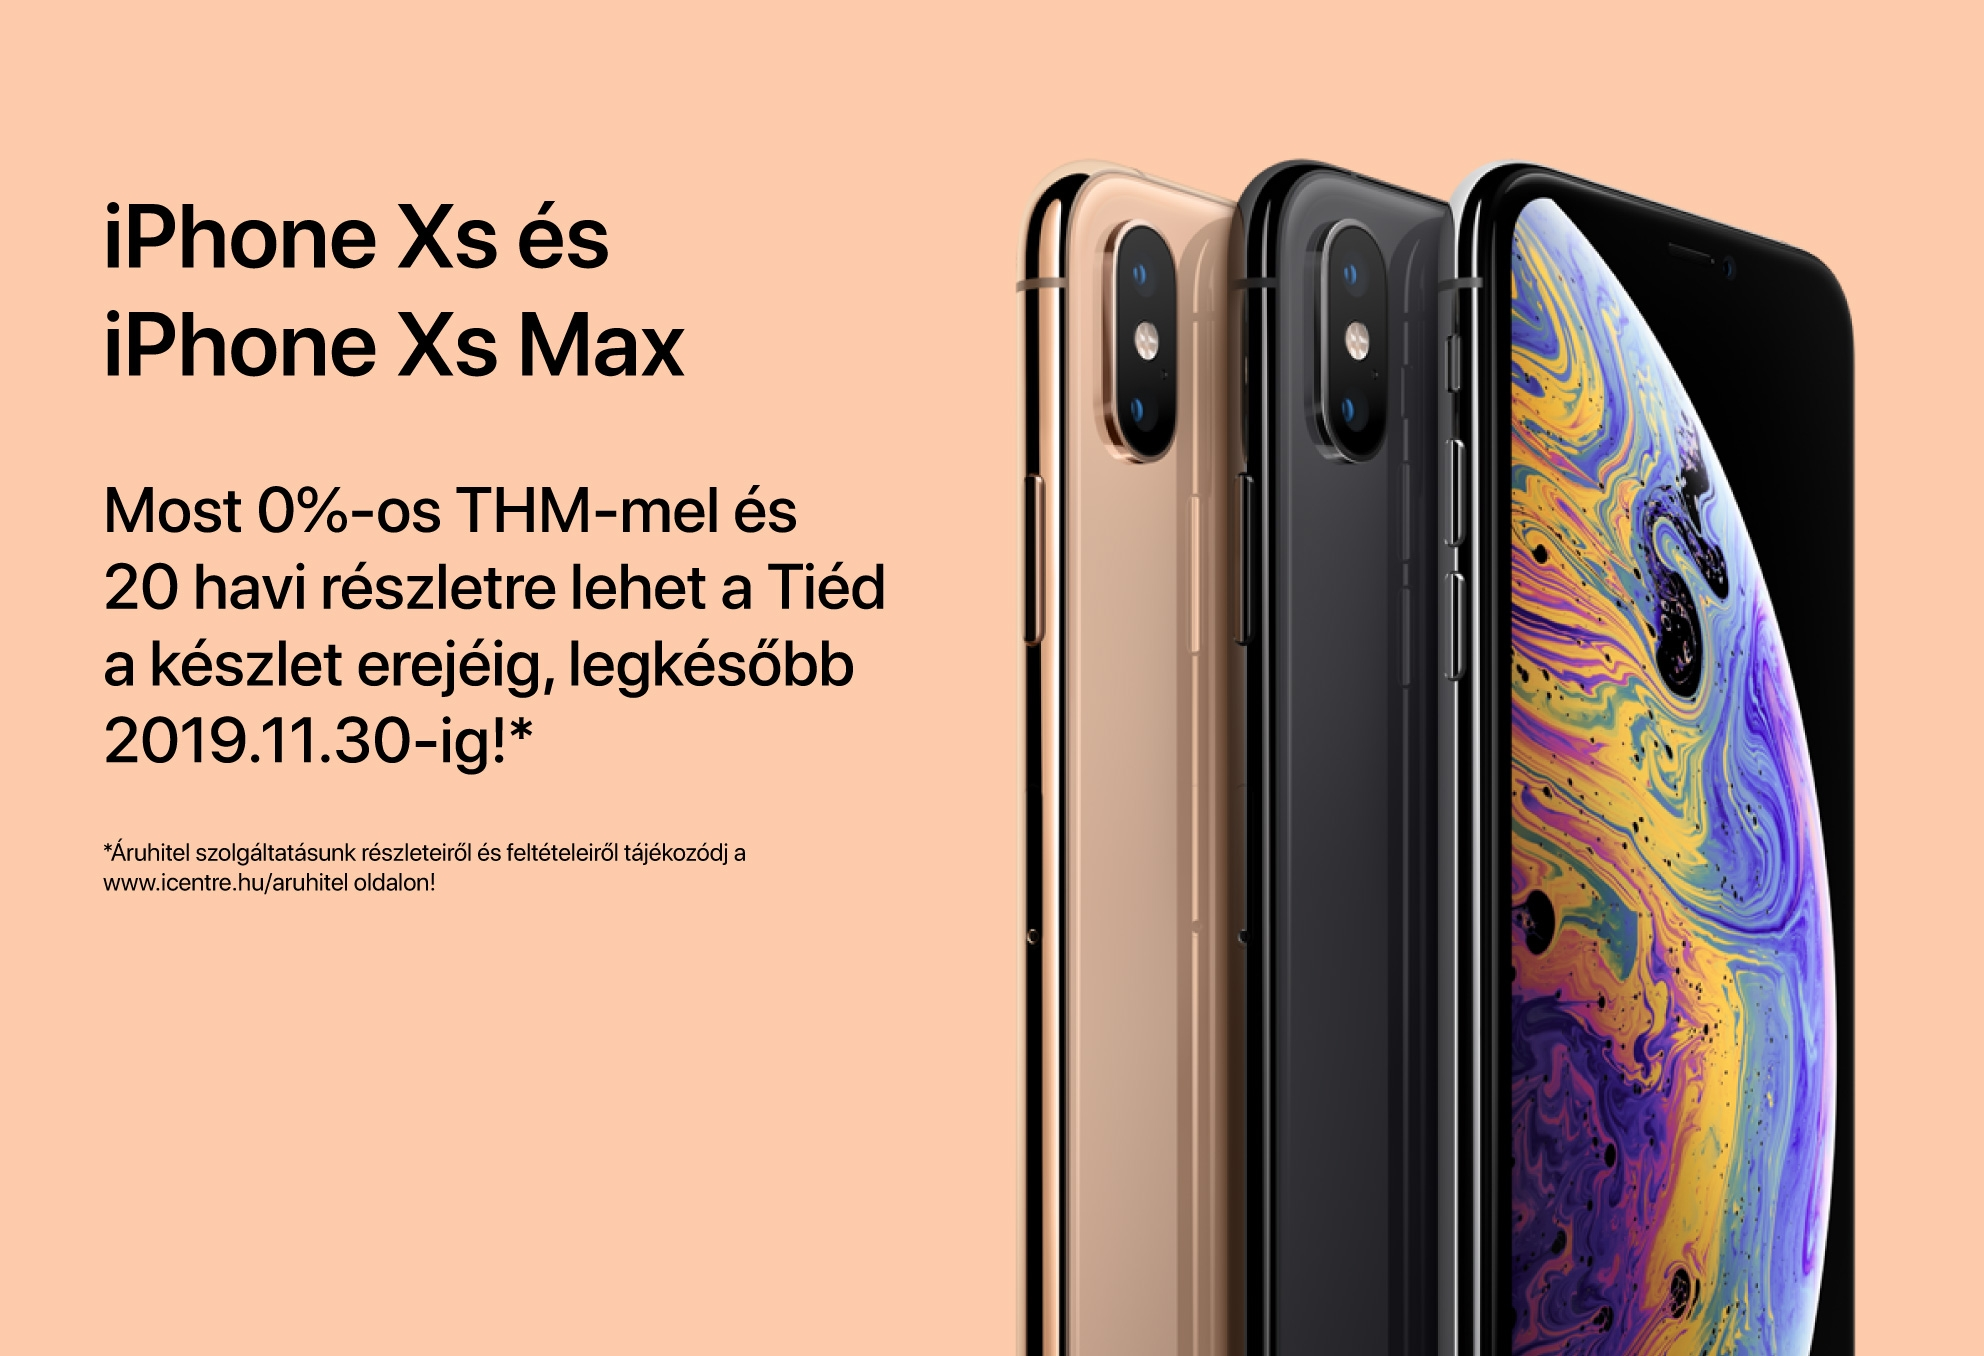 iPhone Xs és iPhone Xs Max 0% THM